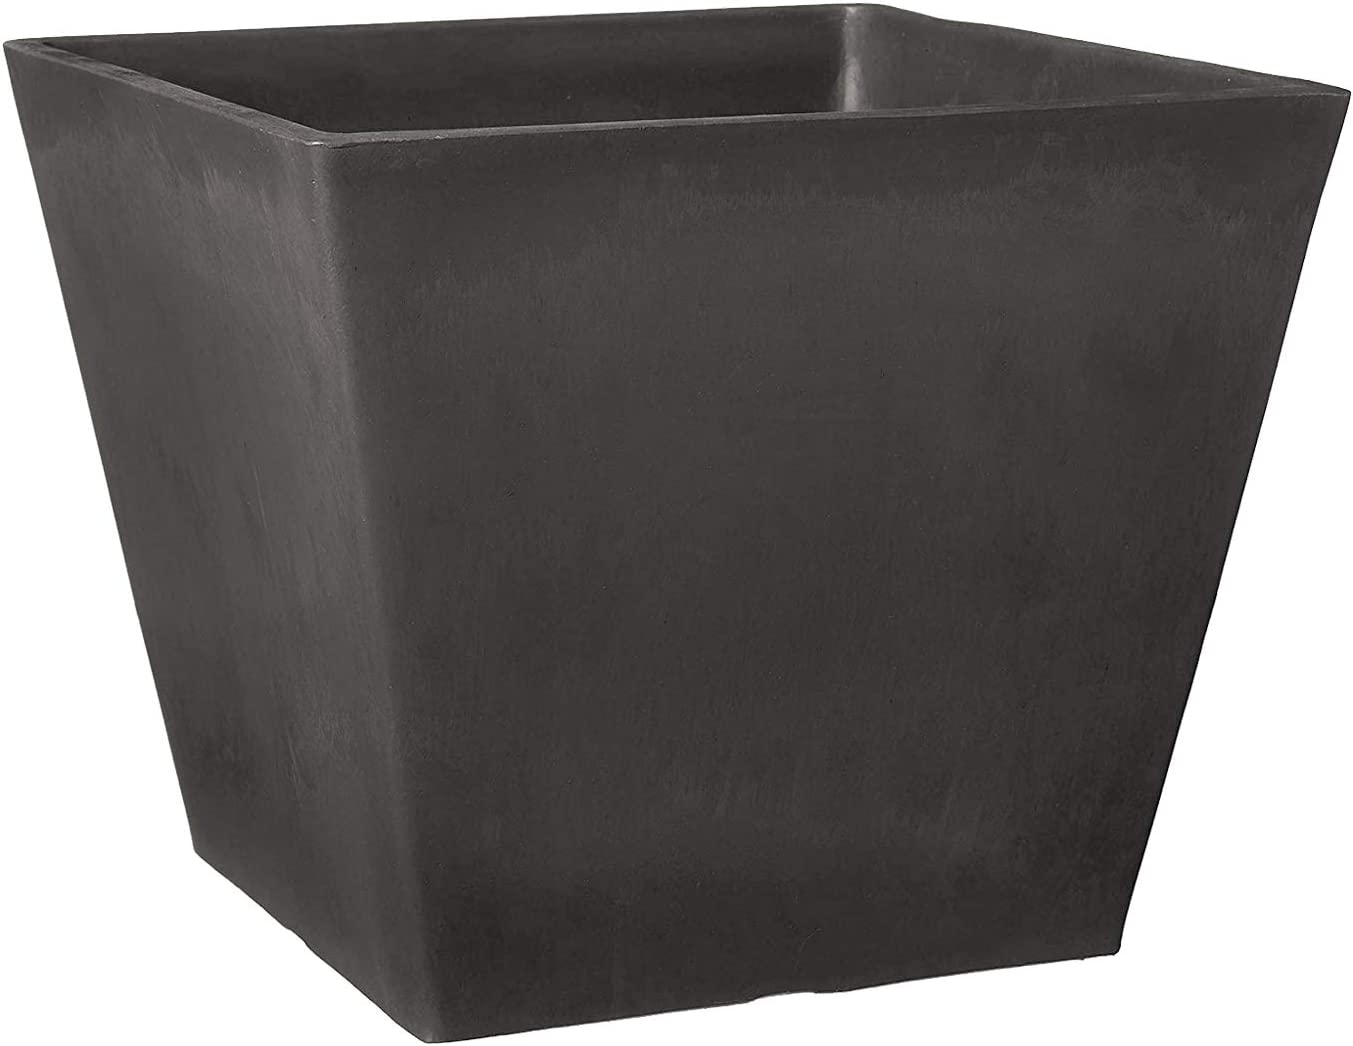 Arcadia Garden Products UF31DC Simplicity Square, 12 by 10-Inch, 12 by 12, Dark Charcoal